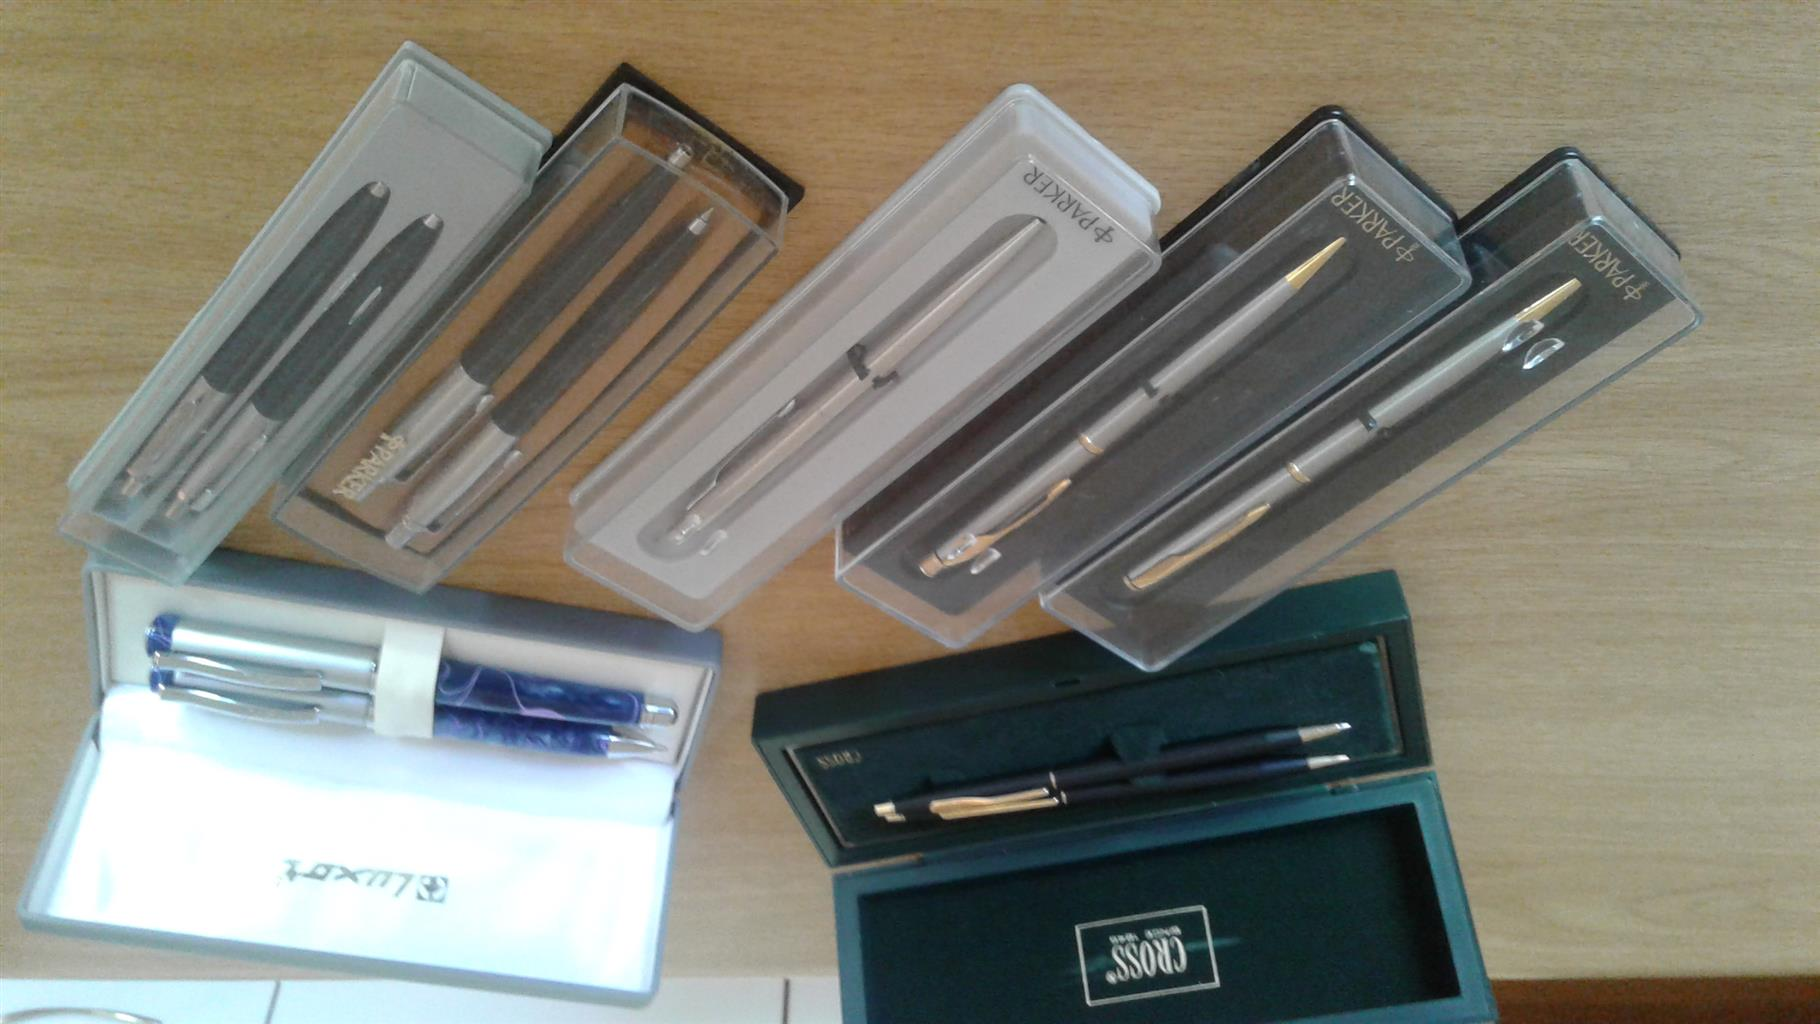 Parker pens and others